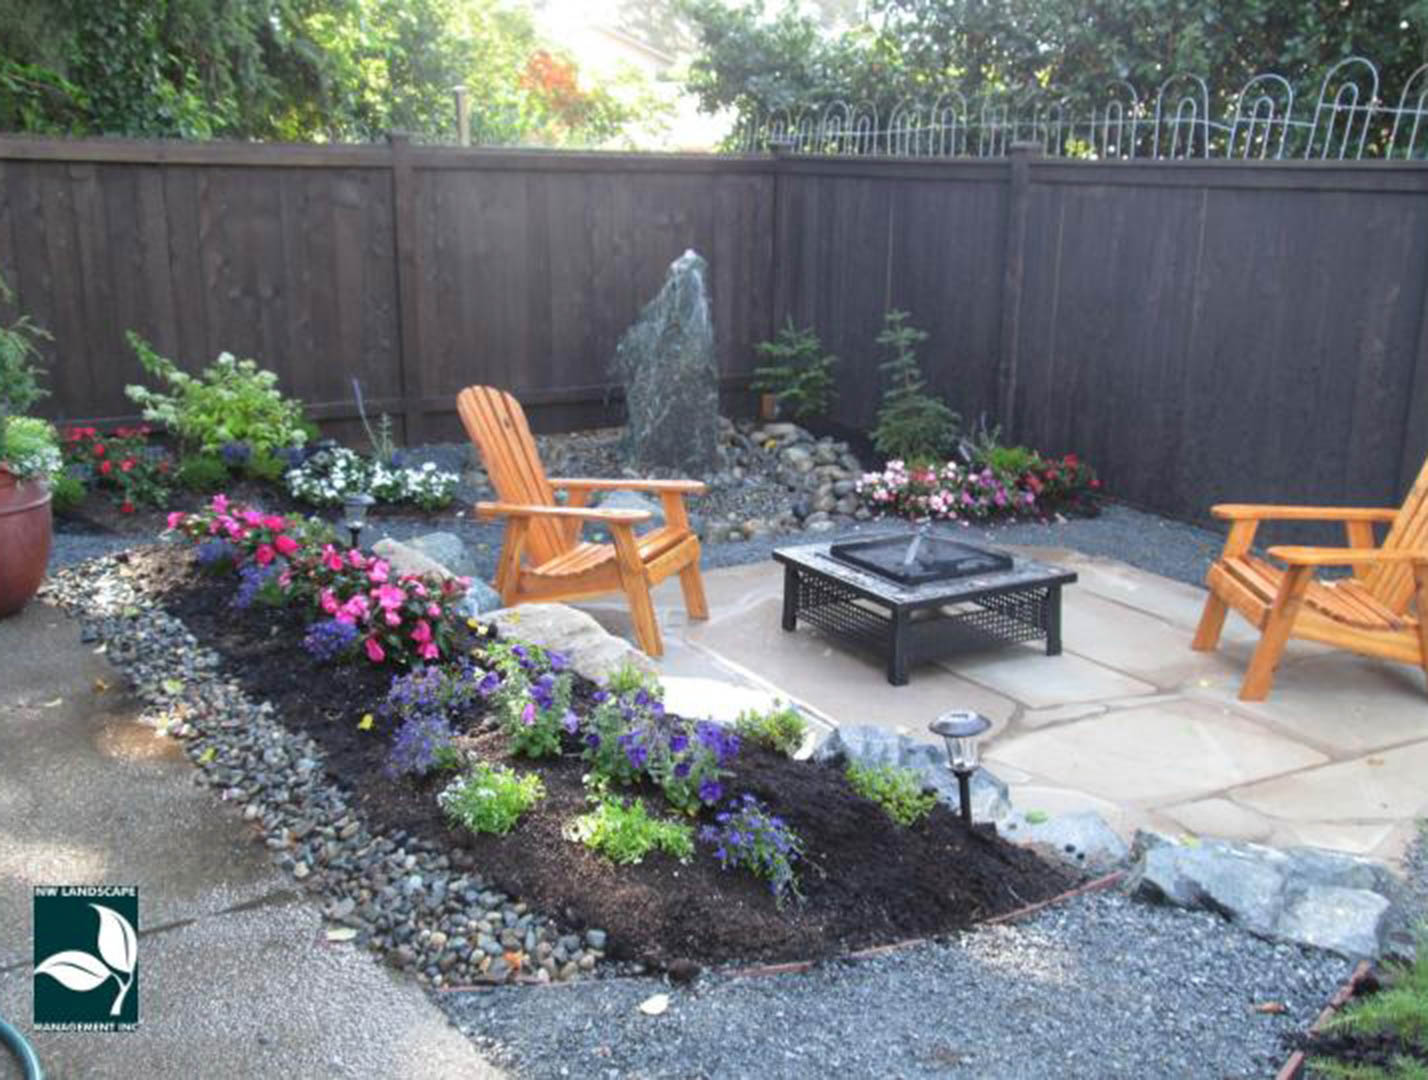 NW Landscape Management Inc